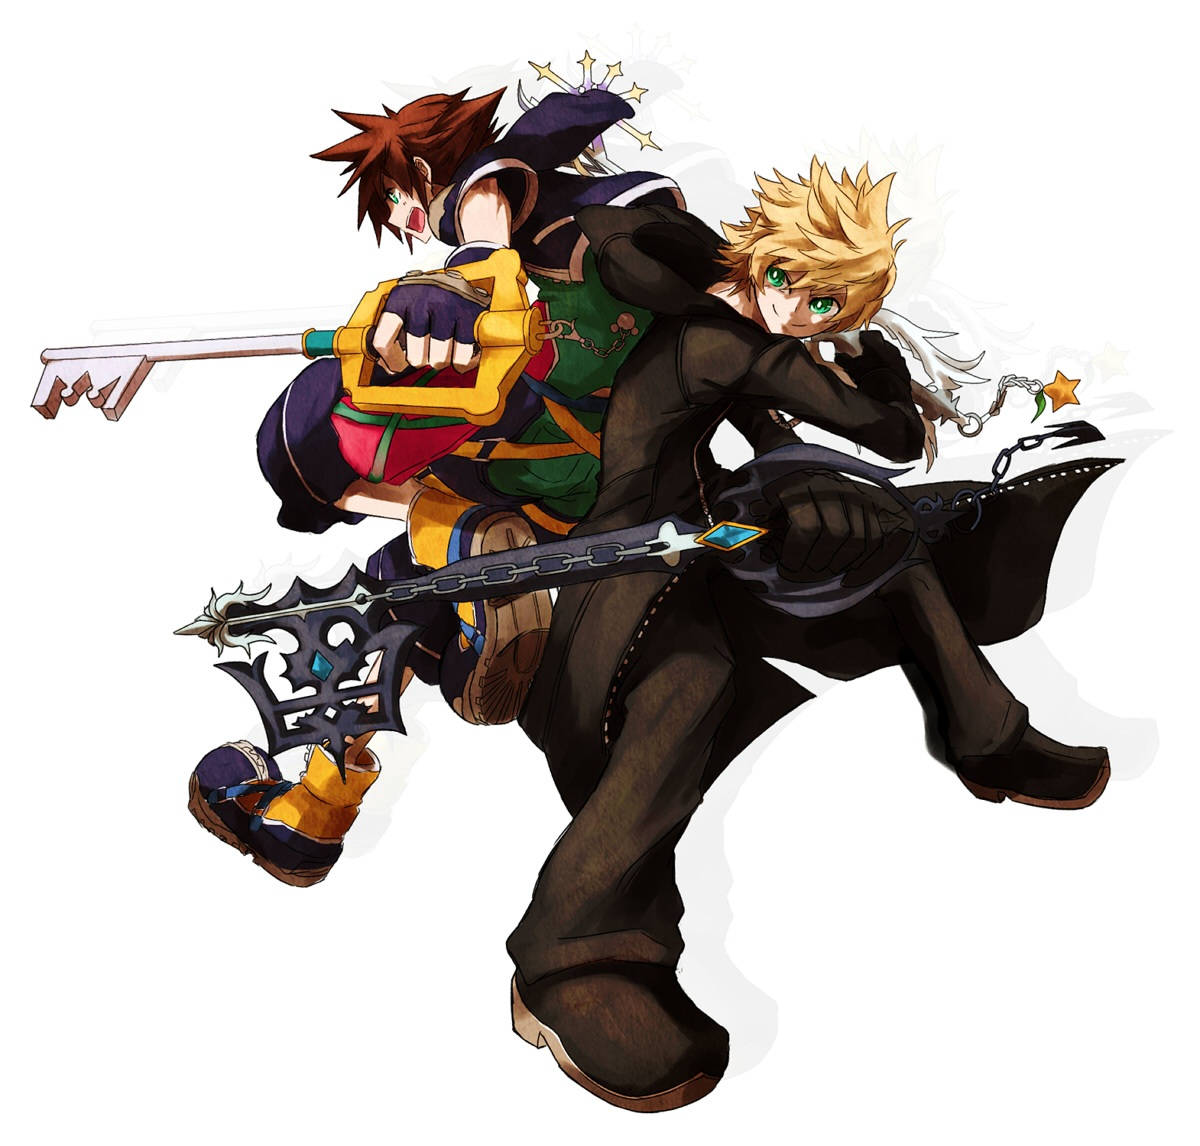 roxas and sora images roxas and sora 3 hd wallpaper and background